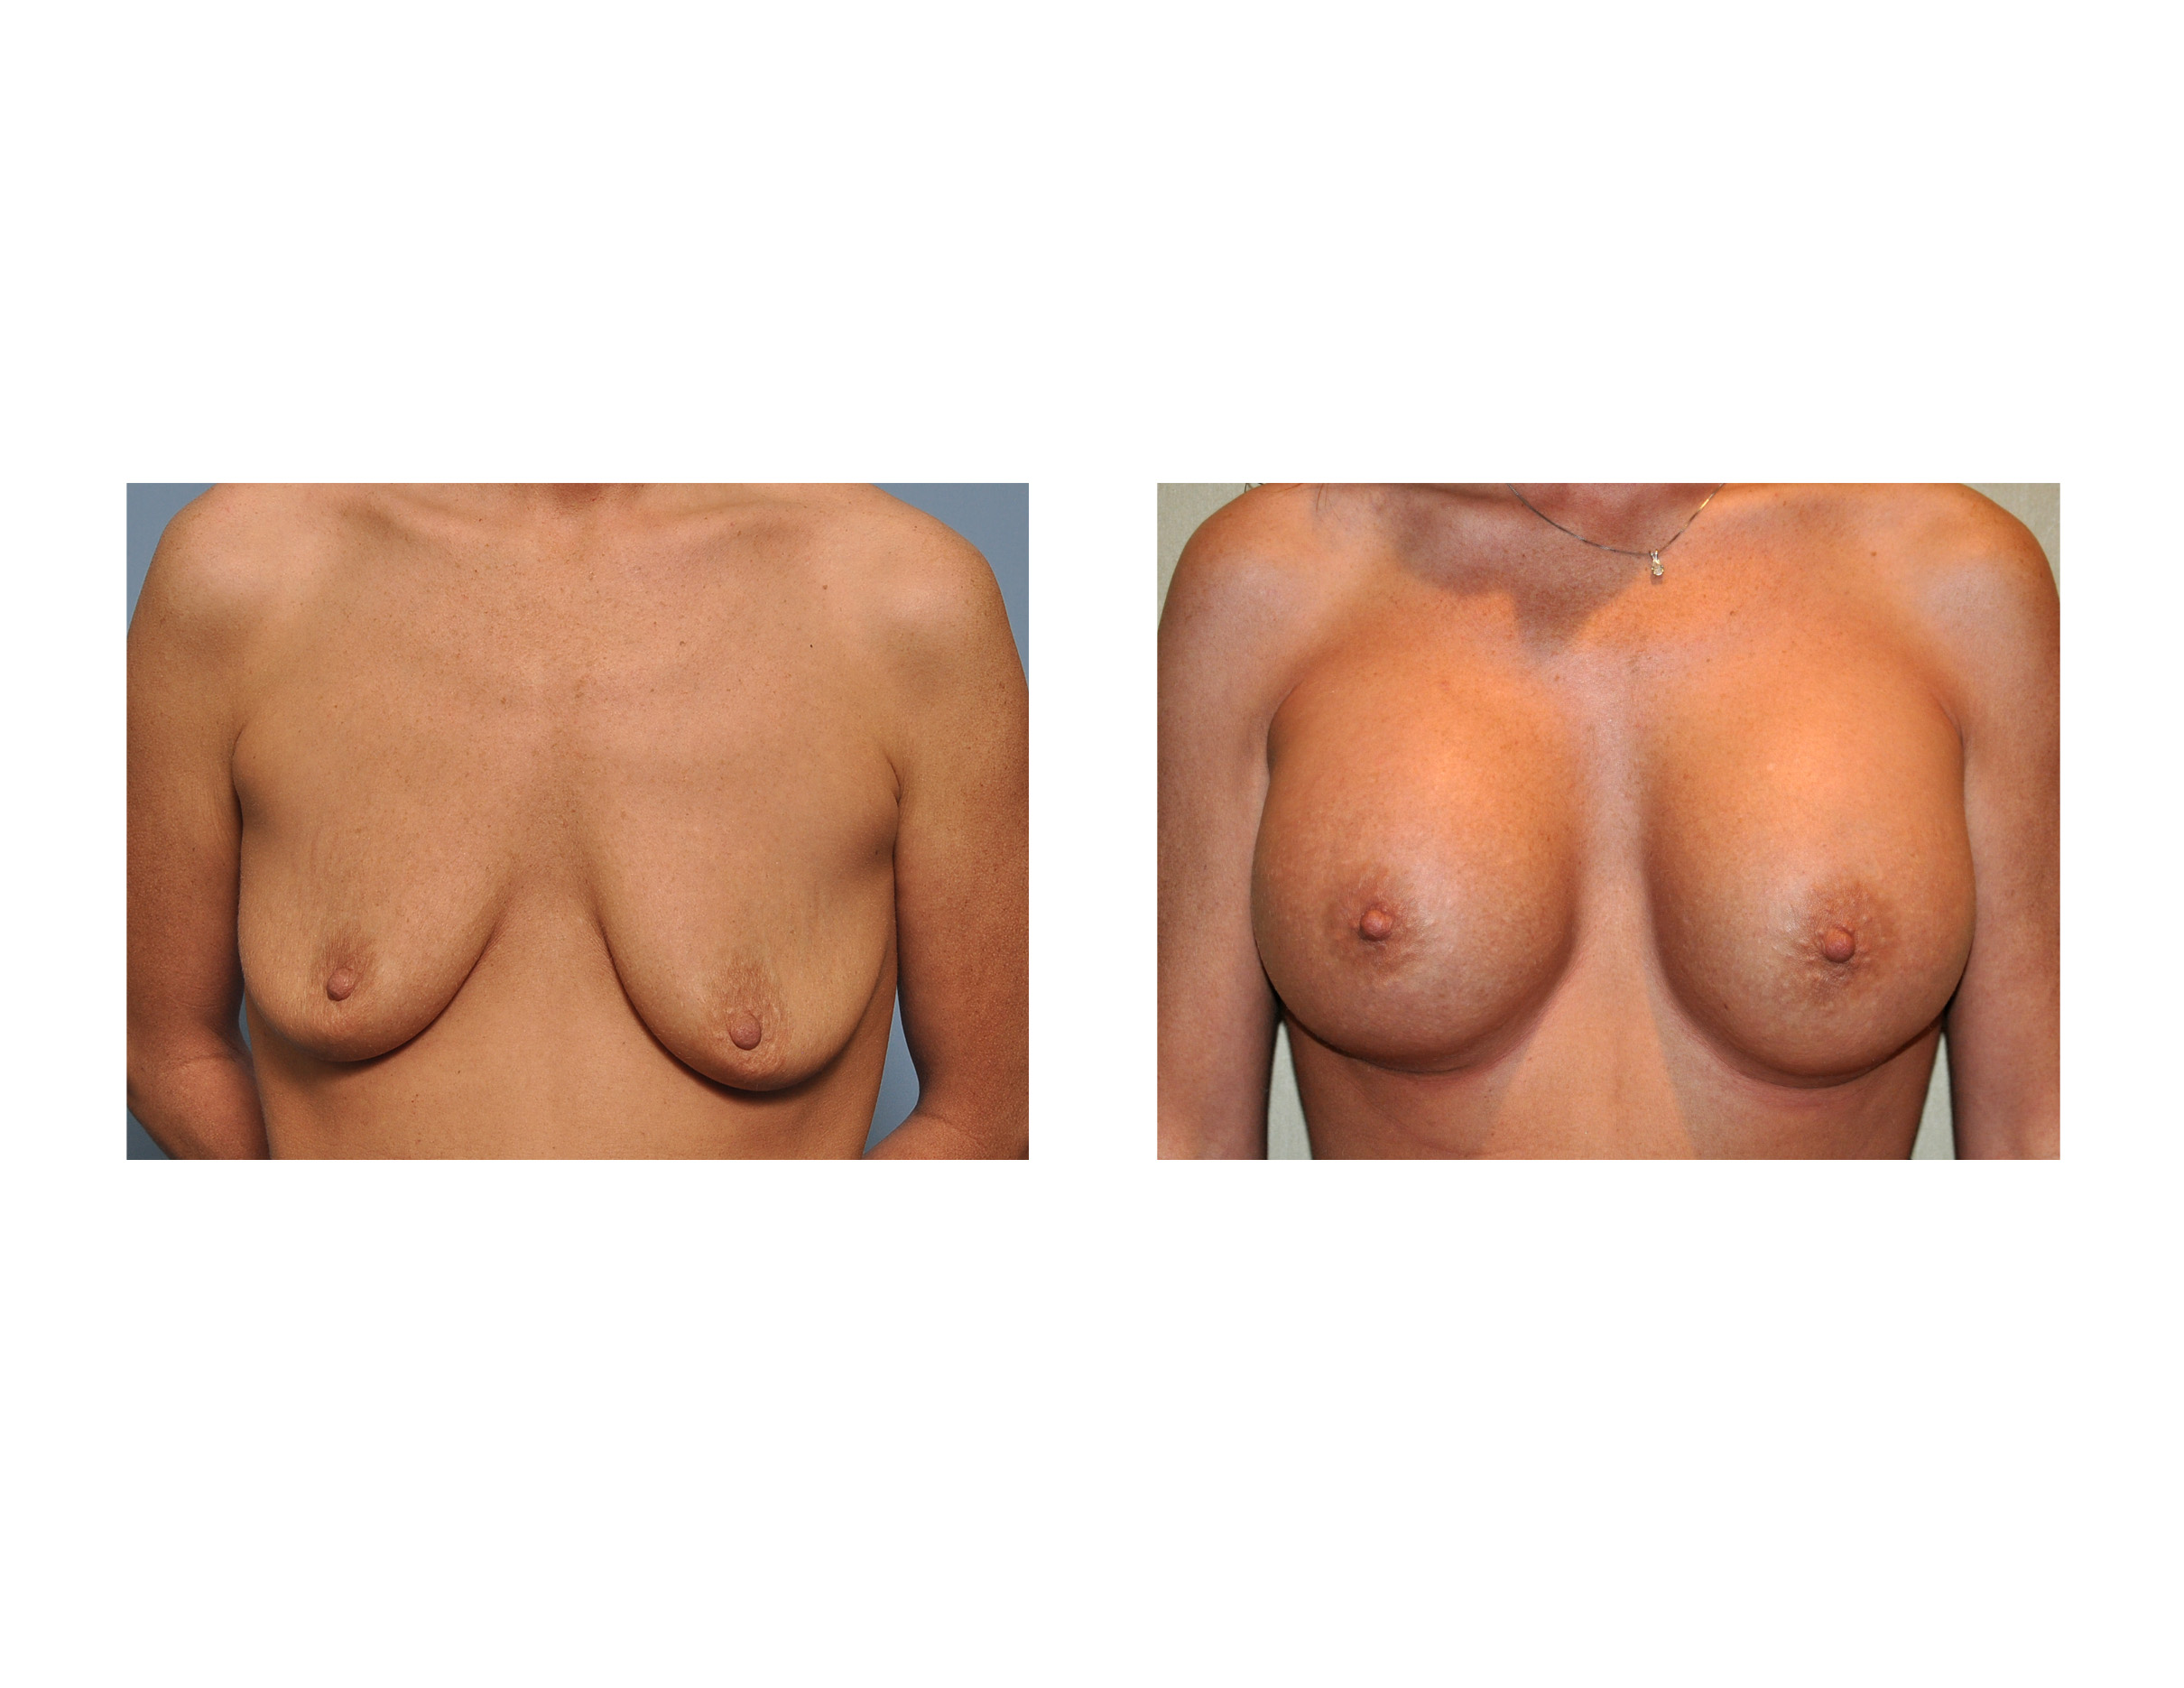 Breast Sizes And Shapes Pictures Her Breast Size And Shape